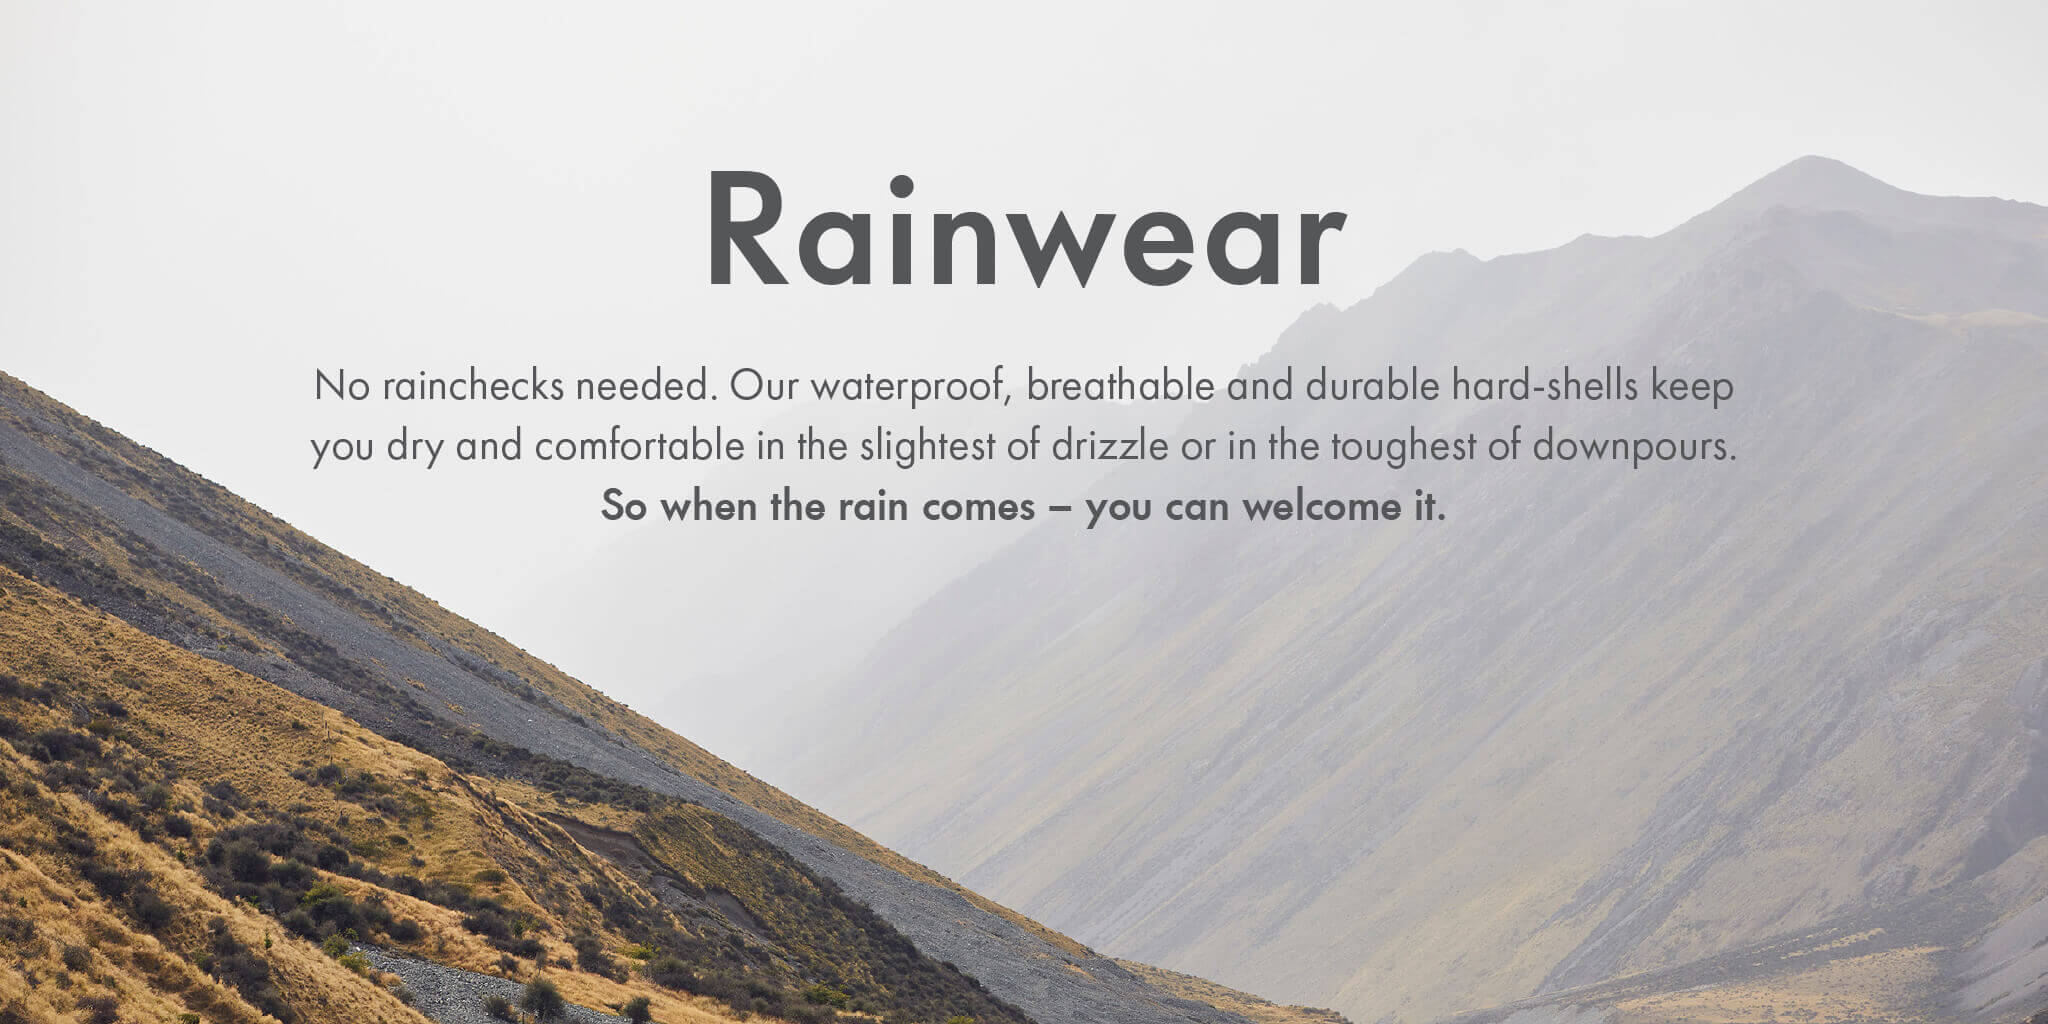 Rainwear - No rainchecks needed. Our waterproof, breathable and durable hard-shells keep you dry and comfortable in slightest of drizzle or in the toughest of downpours.So when the rain comes – you can welcome it.